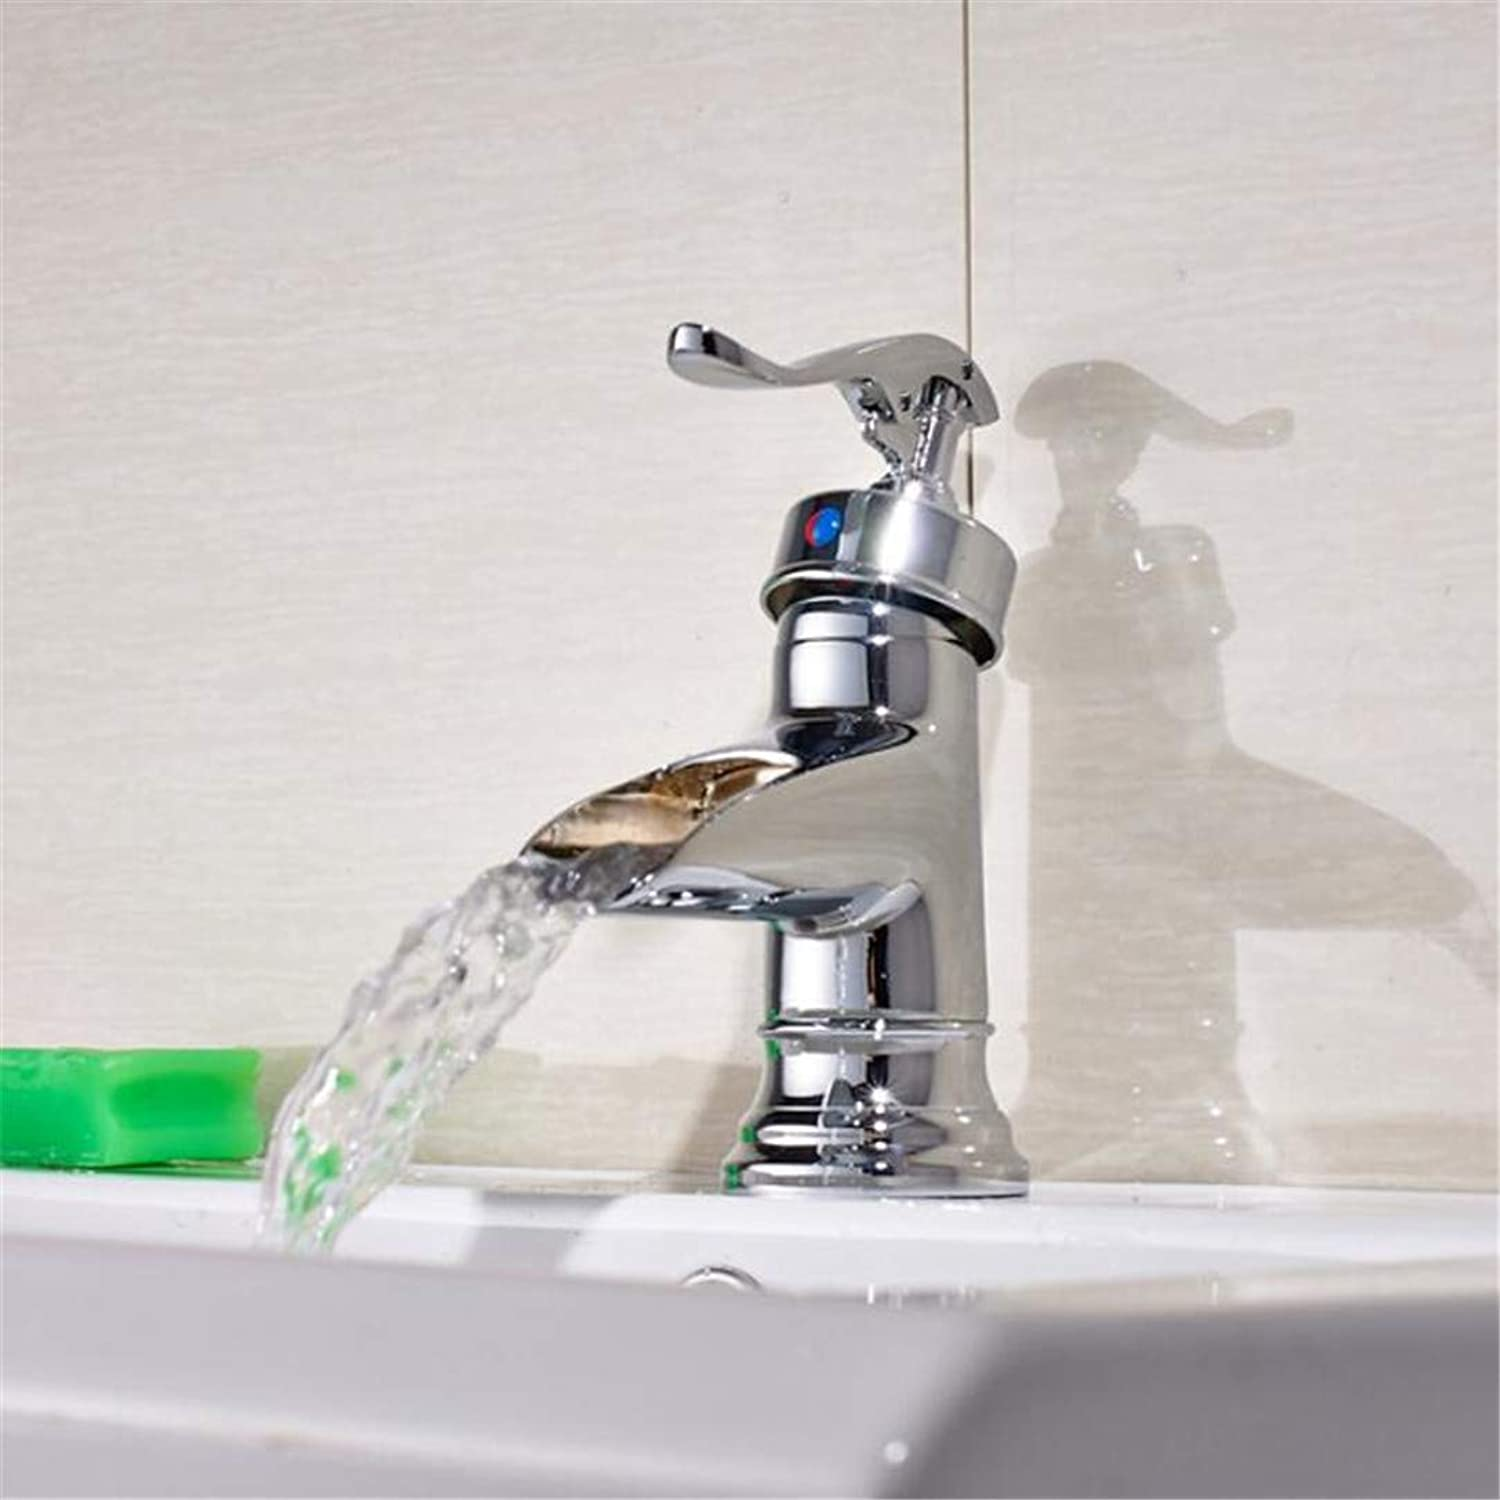 Faucet Washbasin Mixer Deck Mounted Bathroom Sink Faucet Single Handle Mixer Tap Nickel Brushed Finished